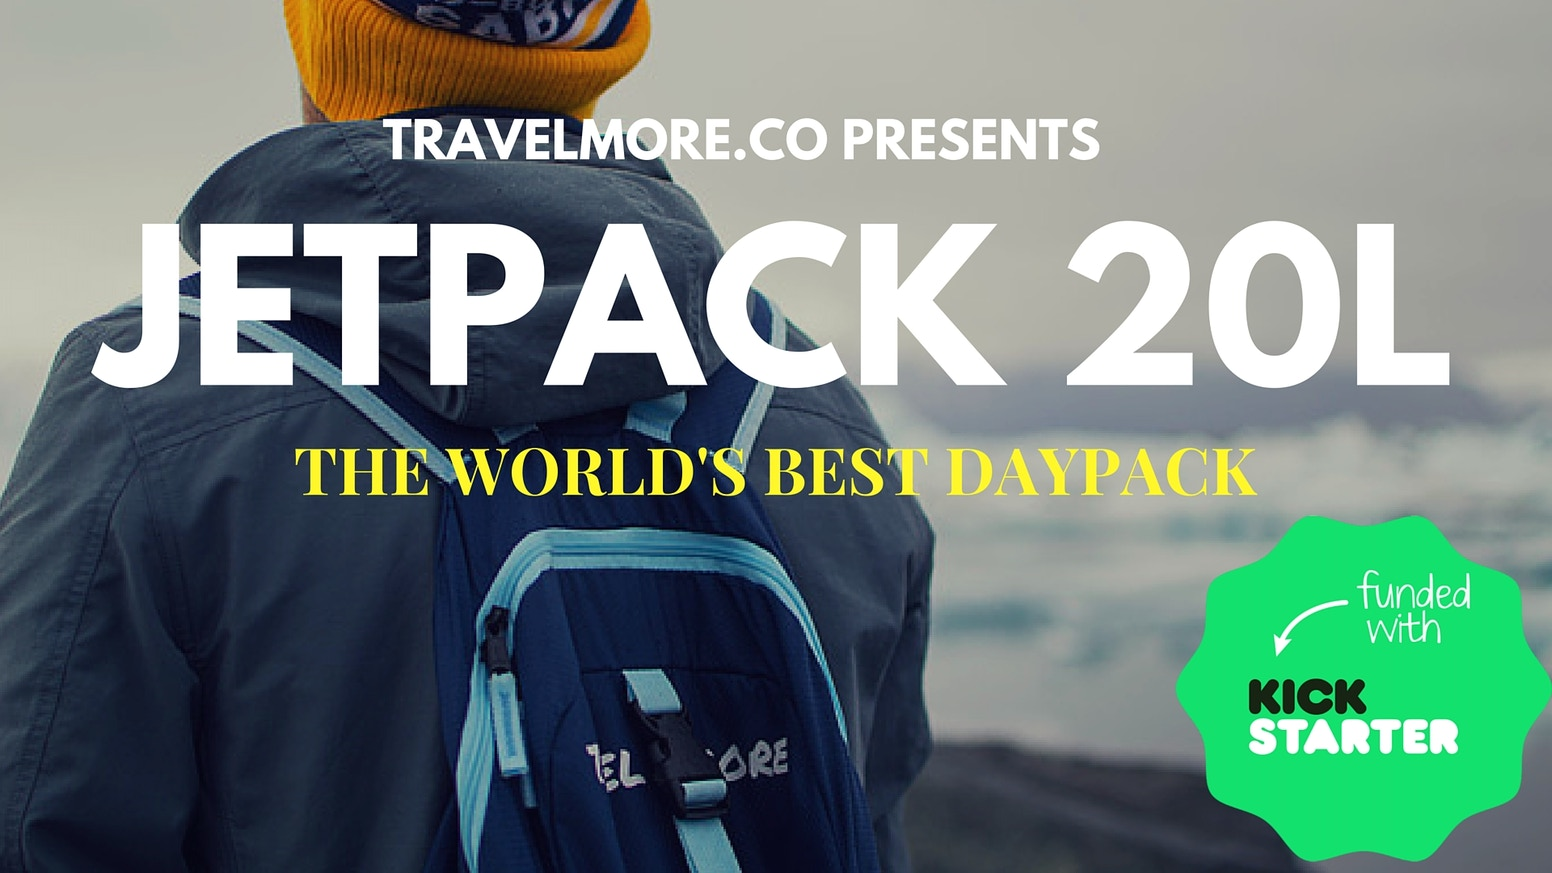 c514e31c634 The world's best travel daypack, designed by travelers for travelers.  Backed by a no